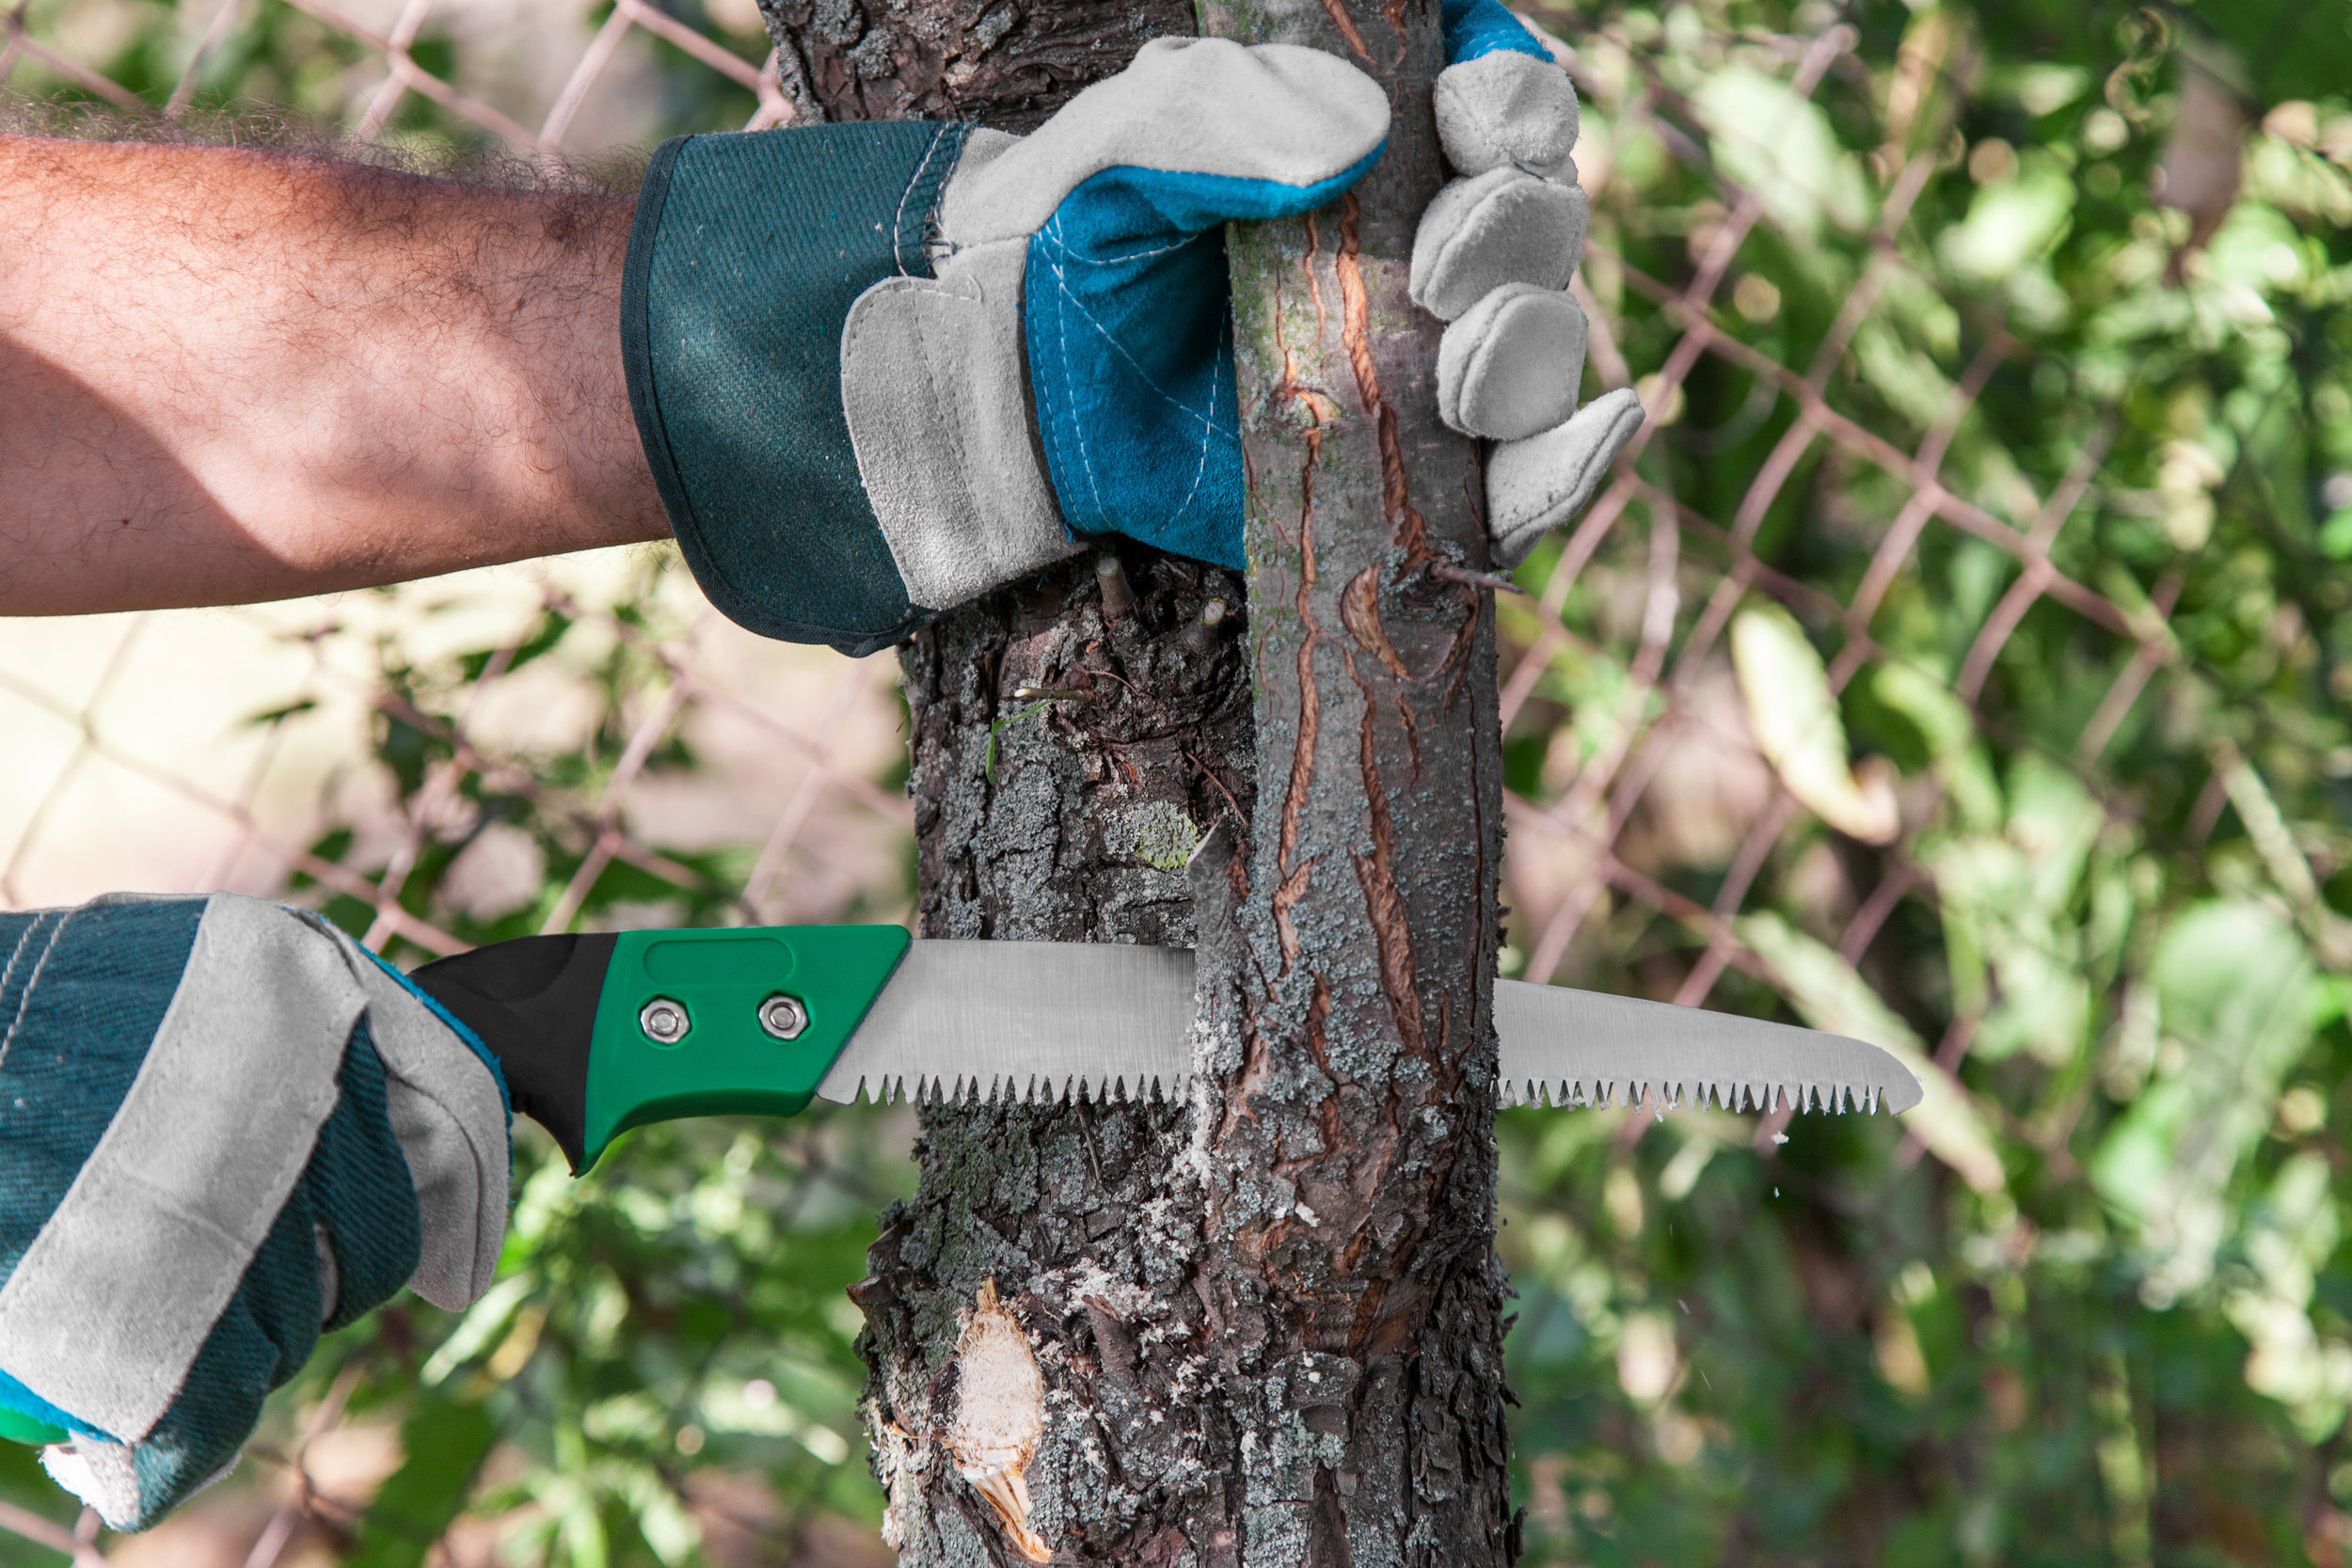 Tree Service in Late Fall: To Prune or Not to Prune?